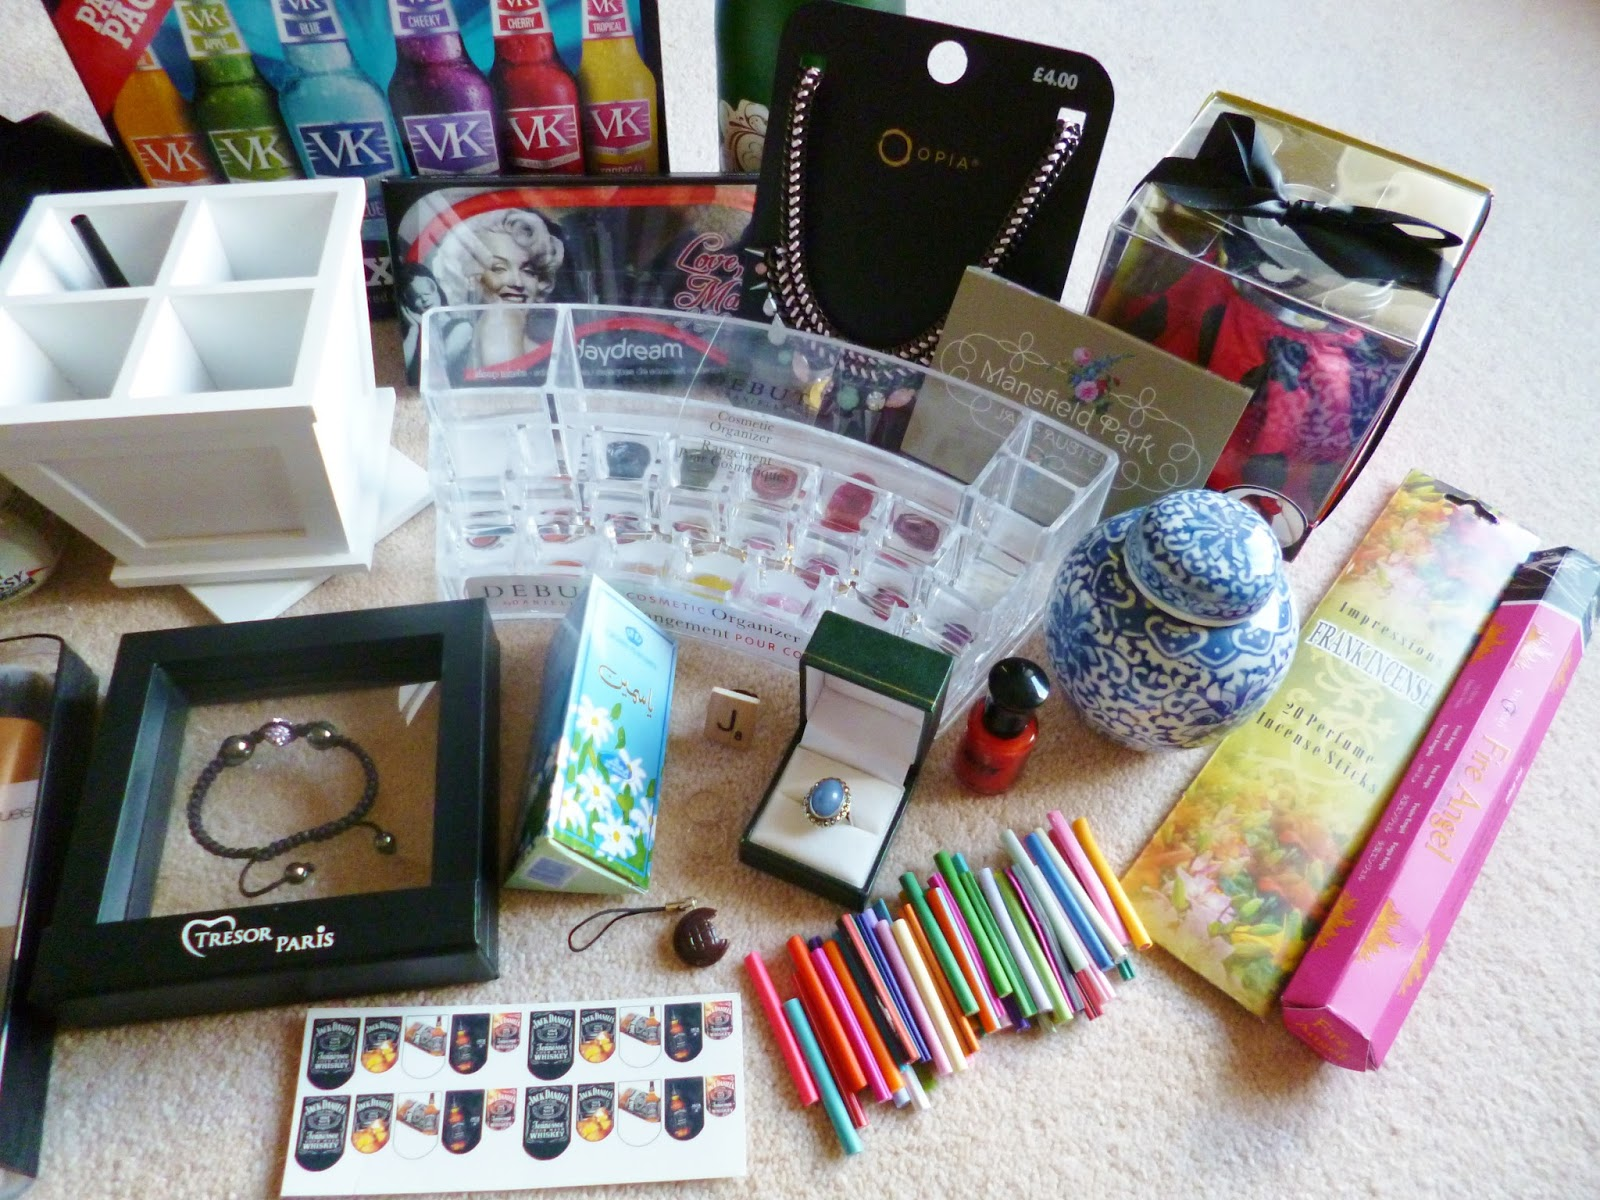 Best Gifts For Your Boyfriends 21st Birthday Inspirations Of